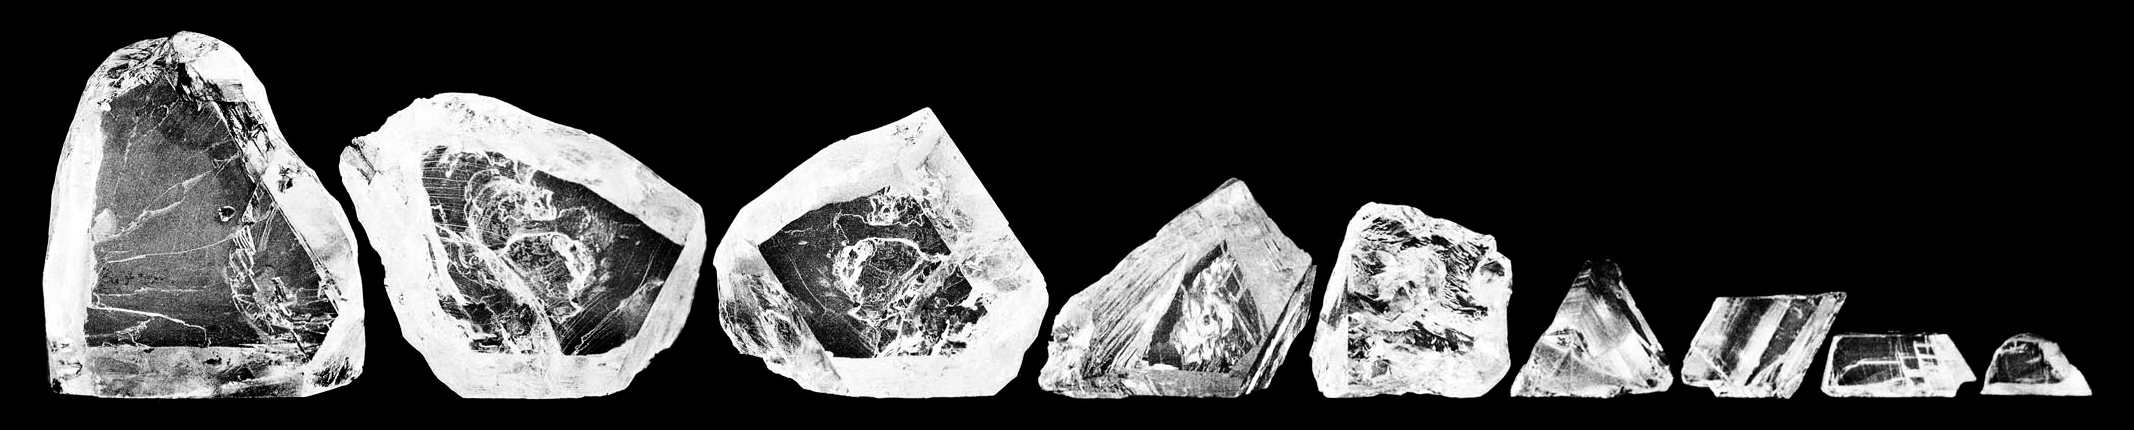 The nine main cleavings from the Cullinan diamond before they were faceted into gems.